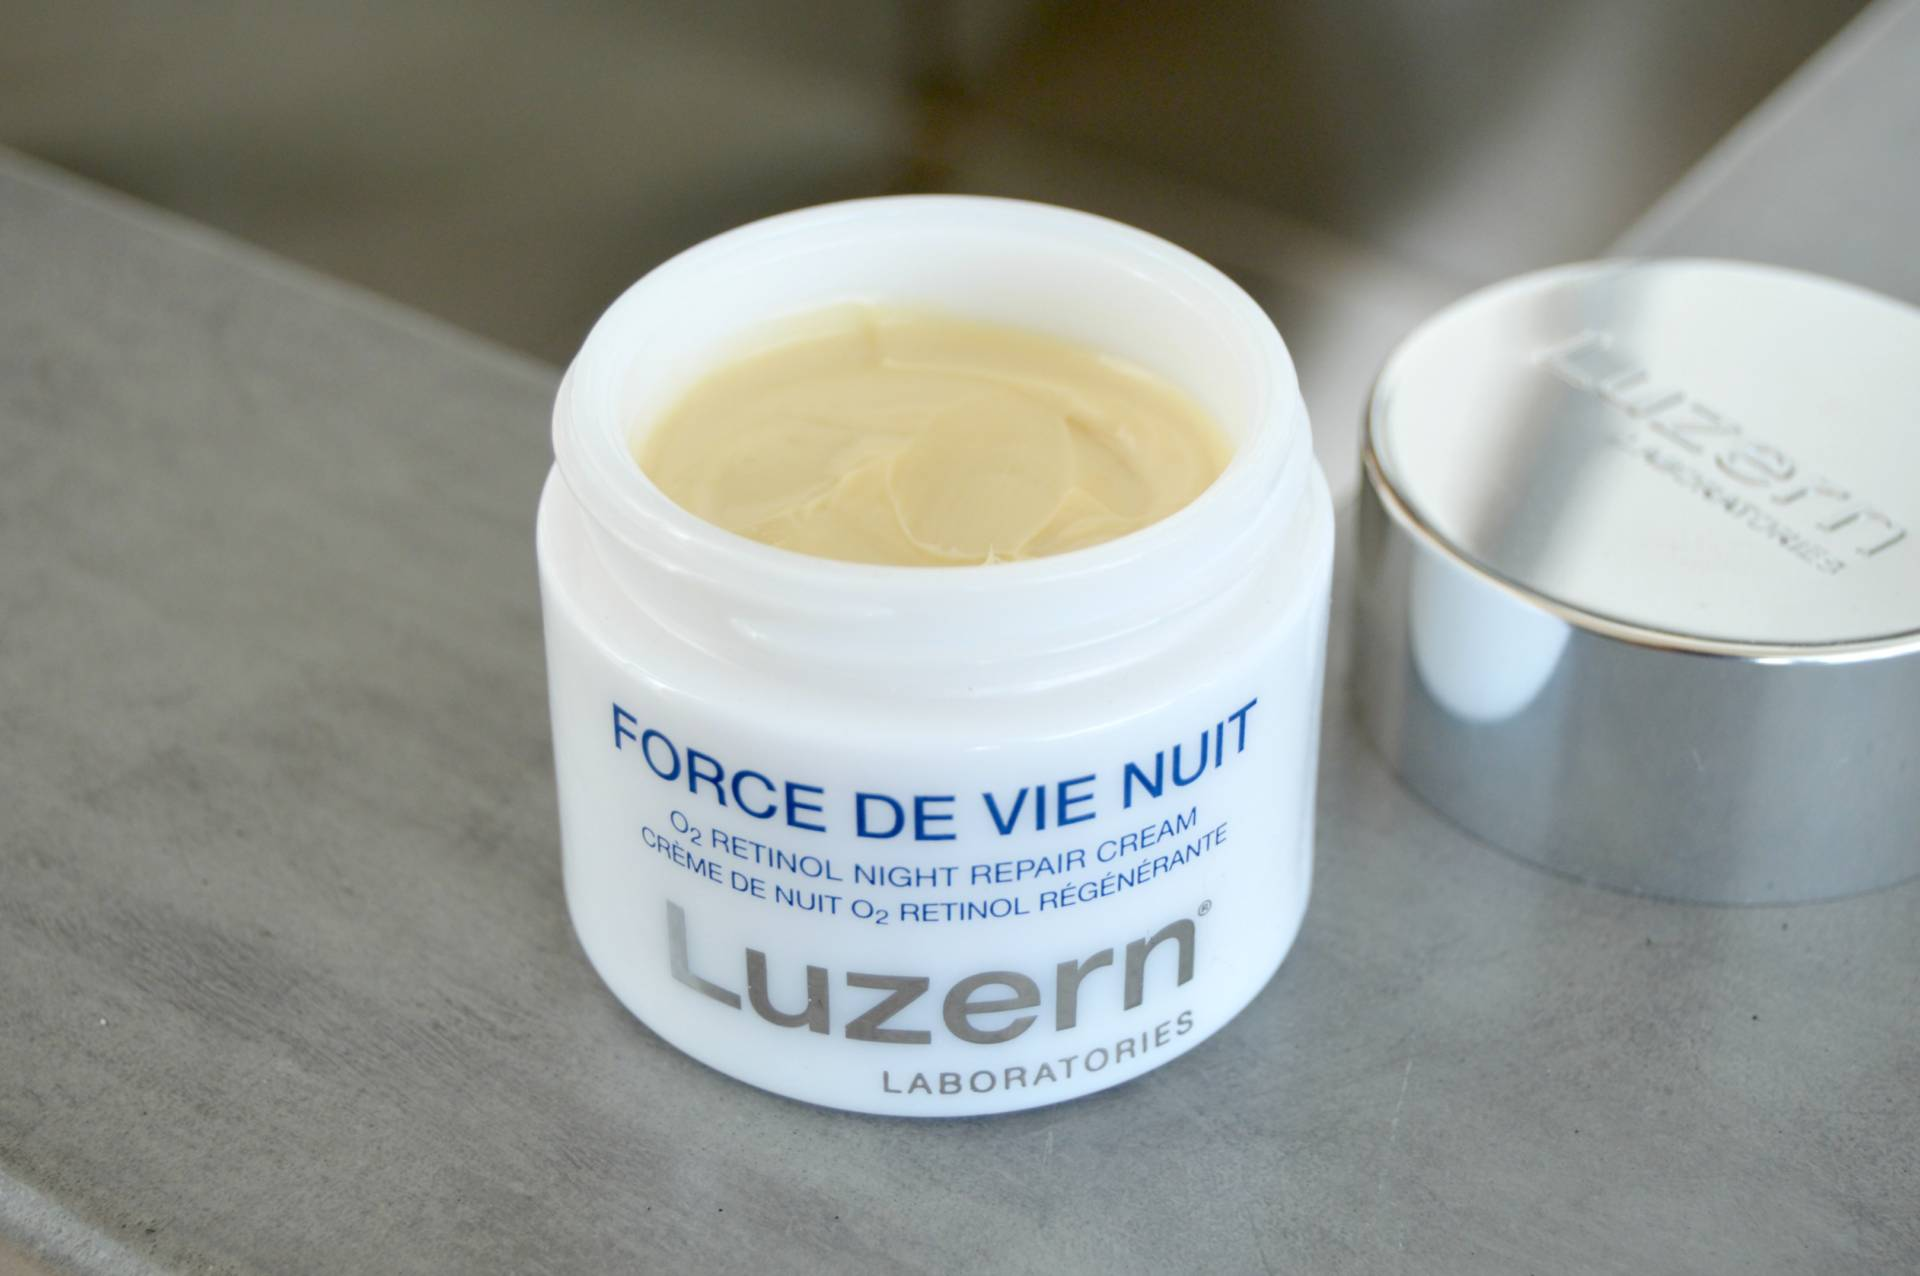 luzern-labs-inhautepursuit-force-de-vie-nuit-retinol-night-cream-review